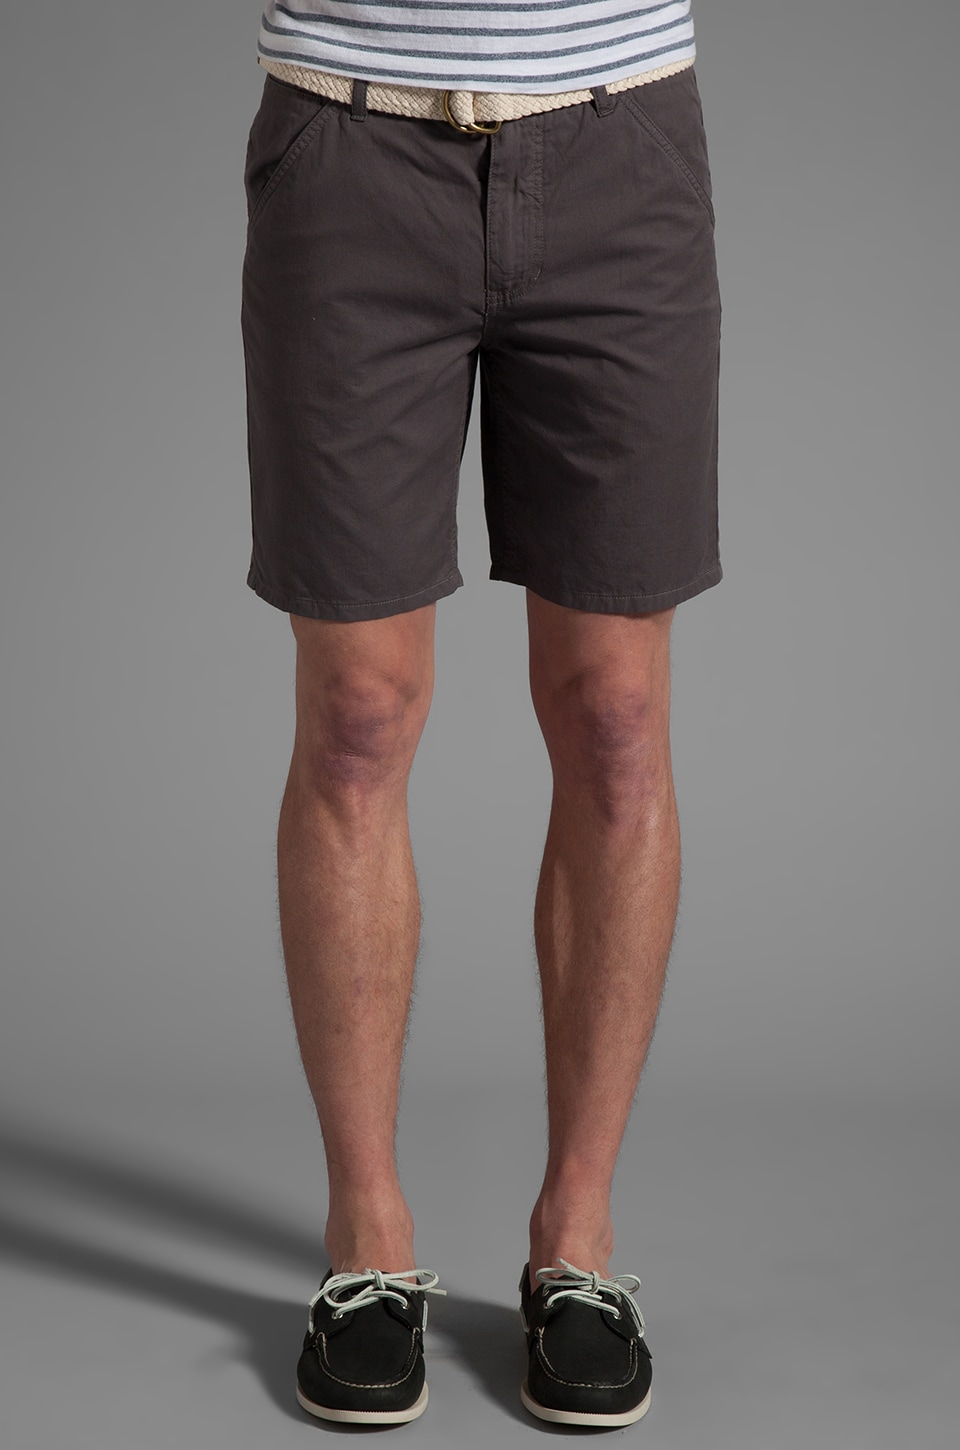 life/after/denim Maldives Chino Short in Castlerock